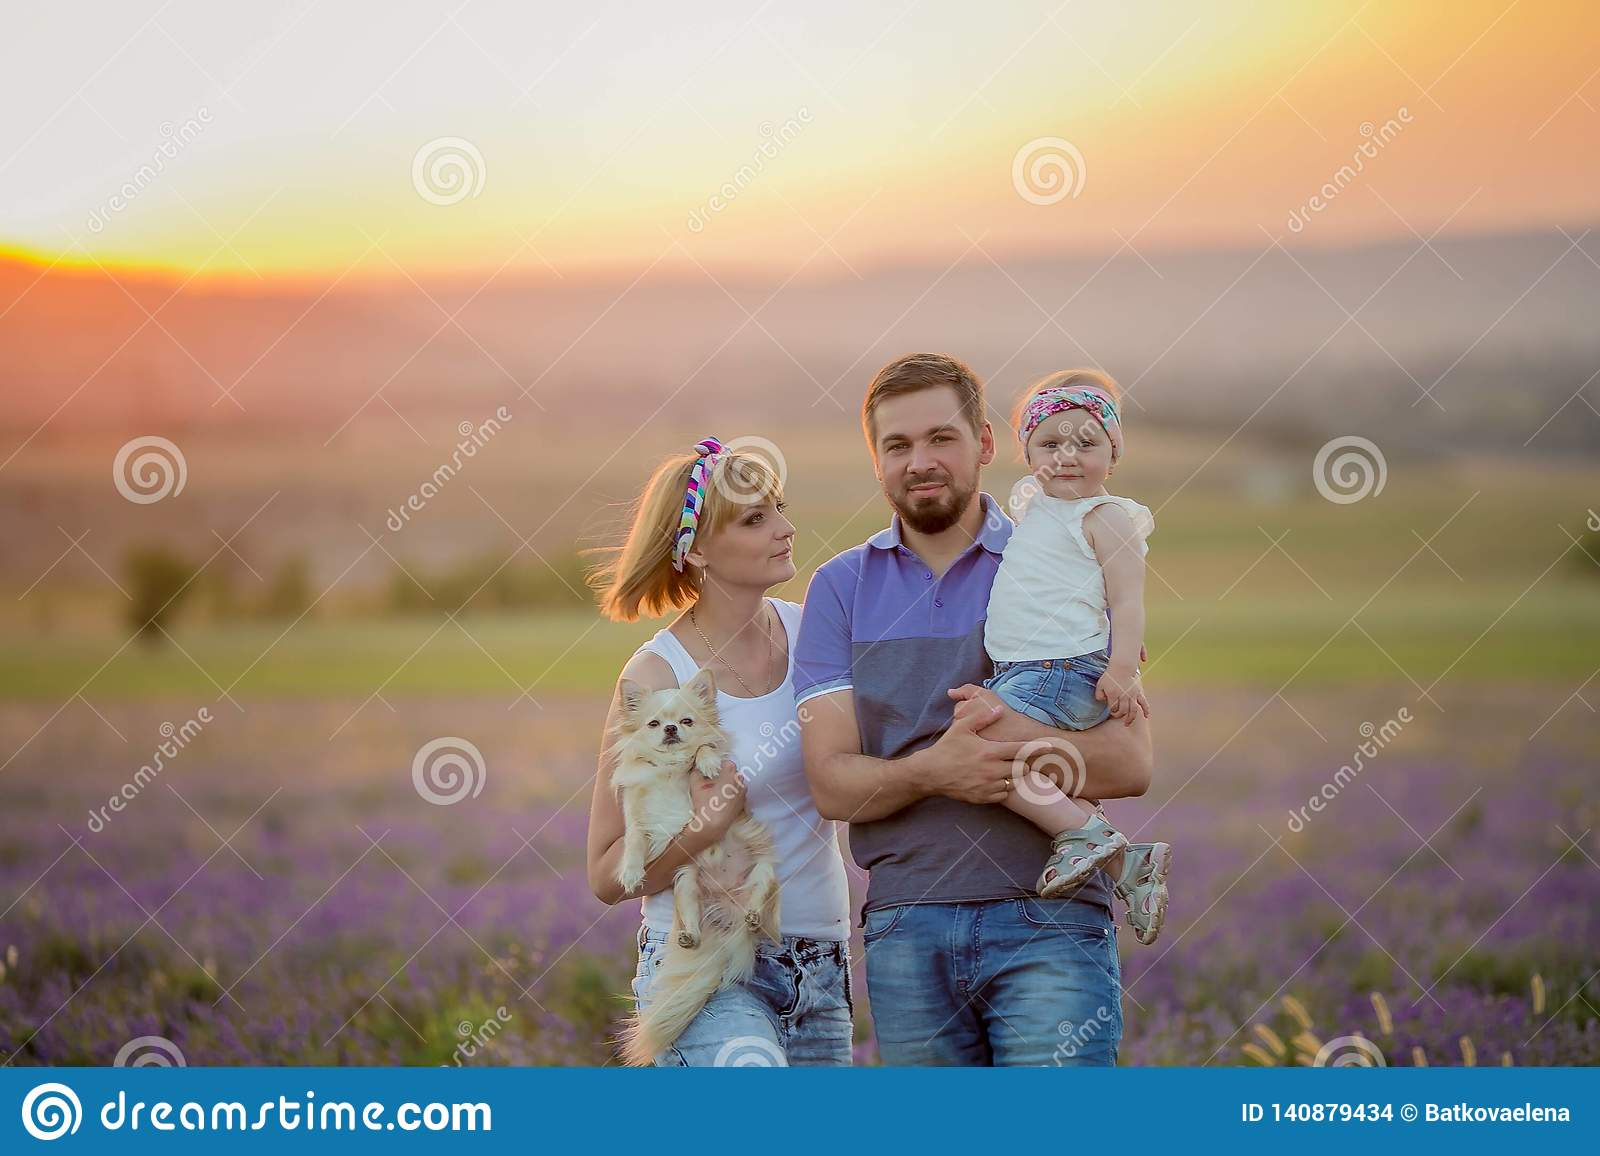 Little girls with dog and falily playing in lavender field